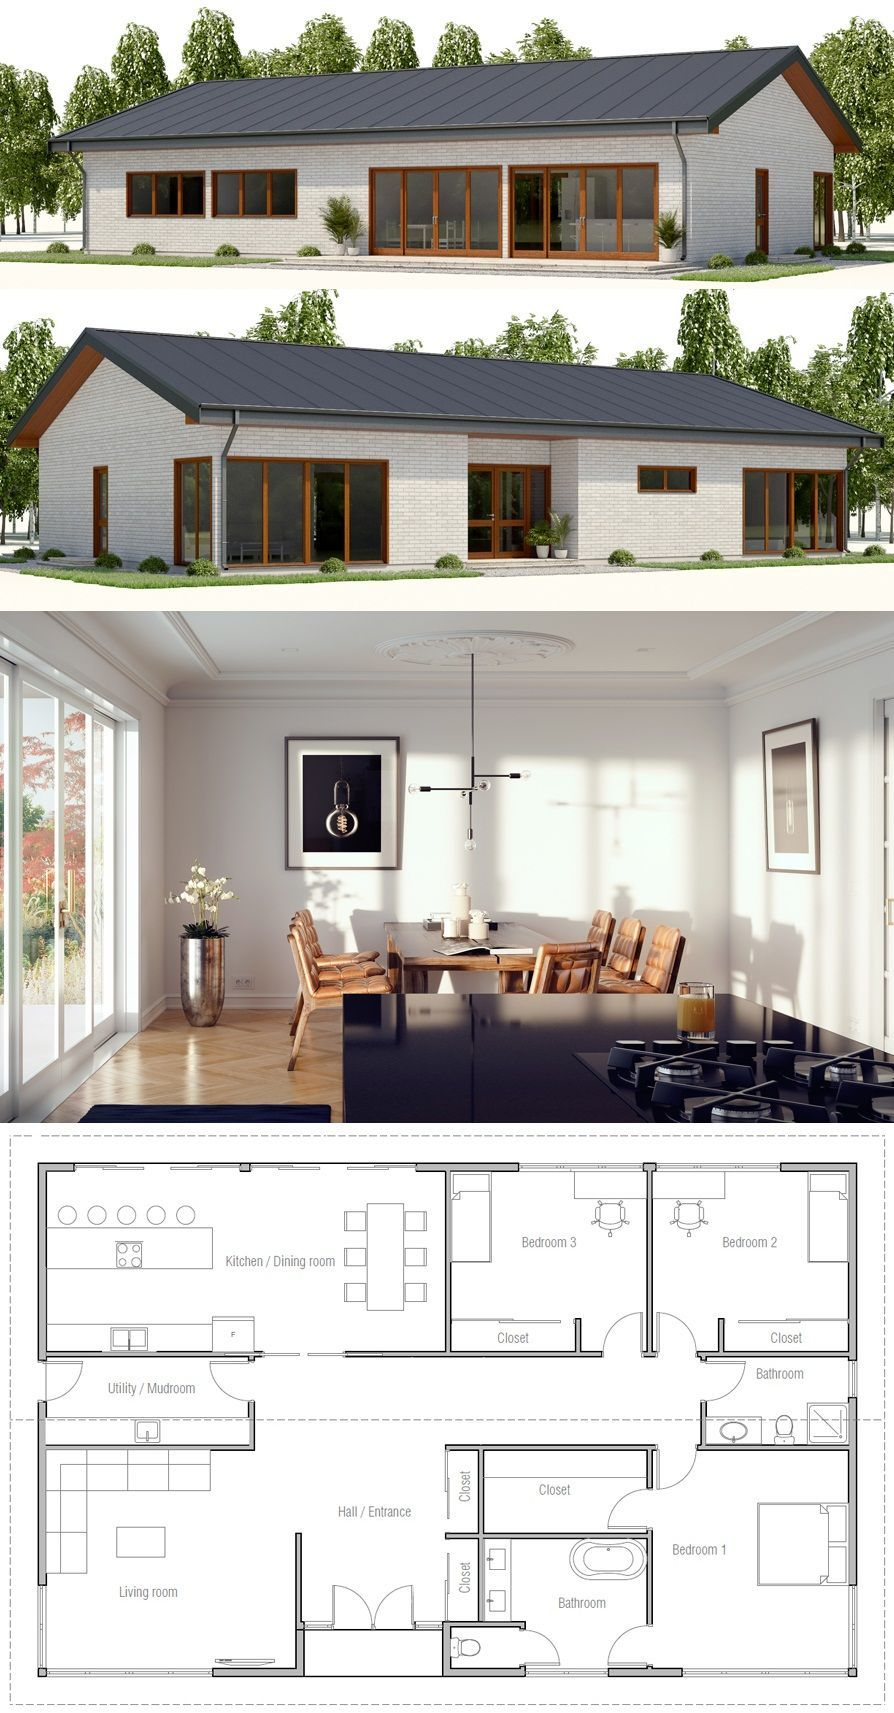 Affordable home plan three bedrooms floor plan simple and